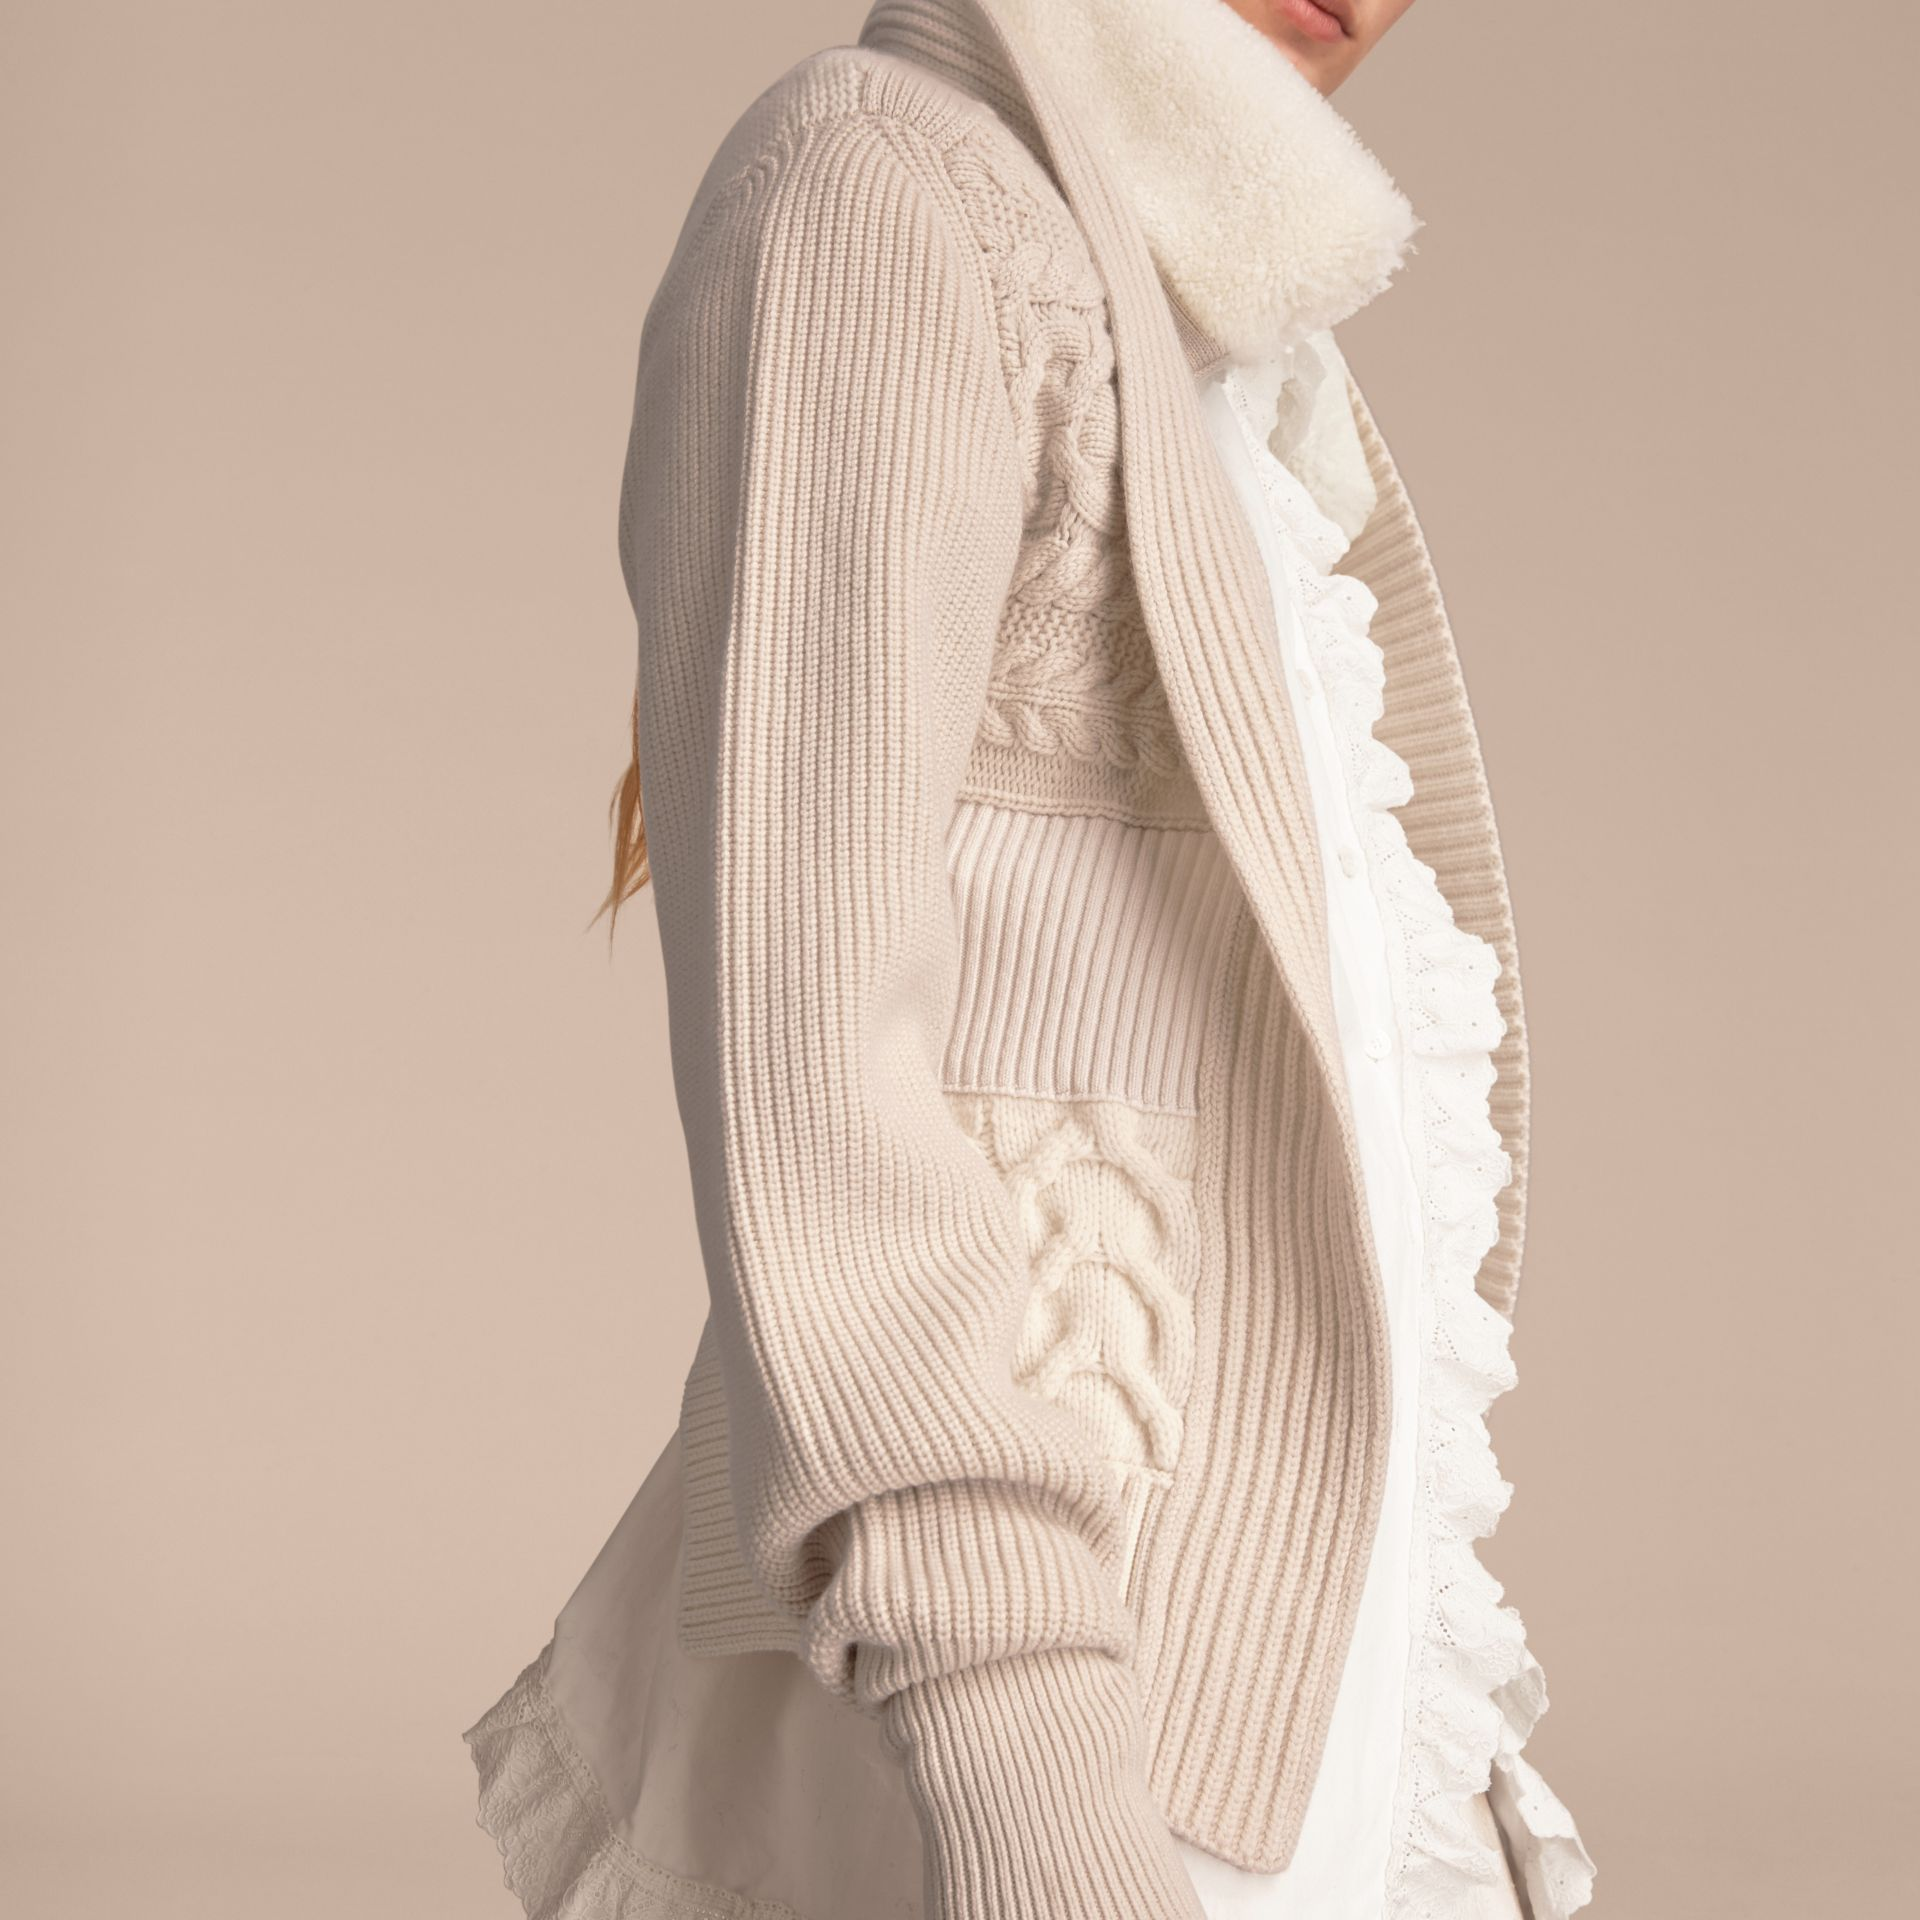 Shearling Collar Knitted Wool Cashmere Jacket - Women | Burberry - gallery image 6